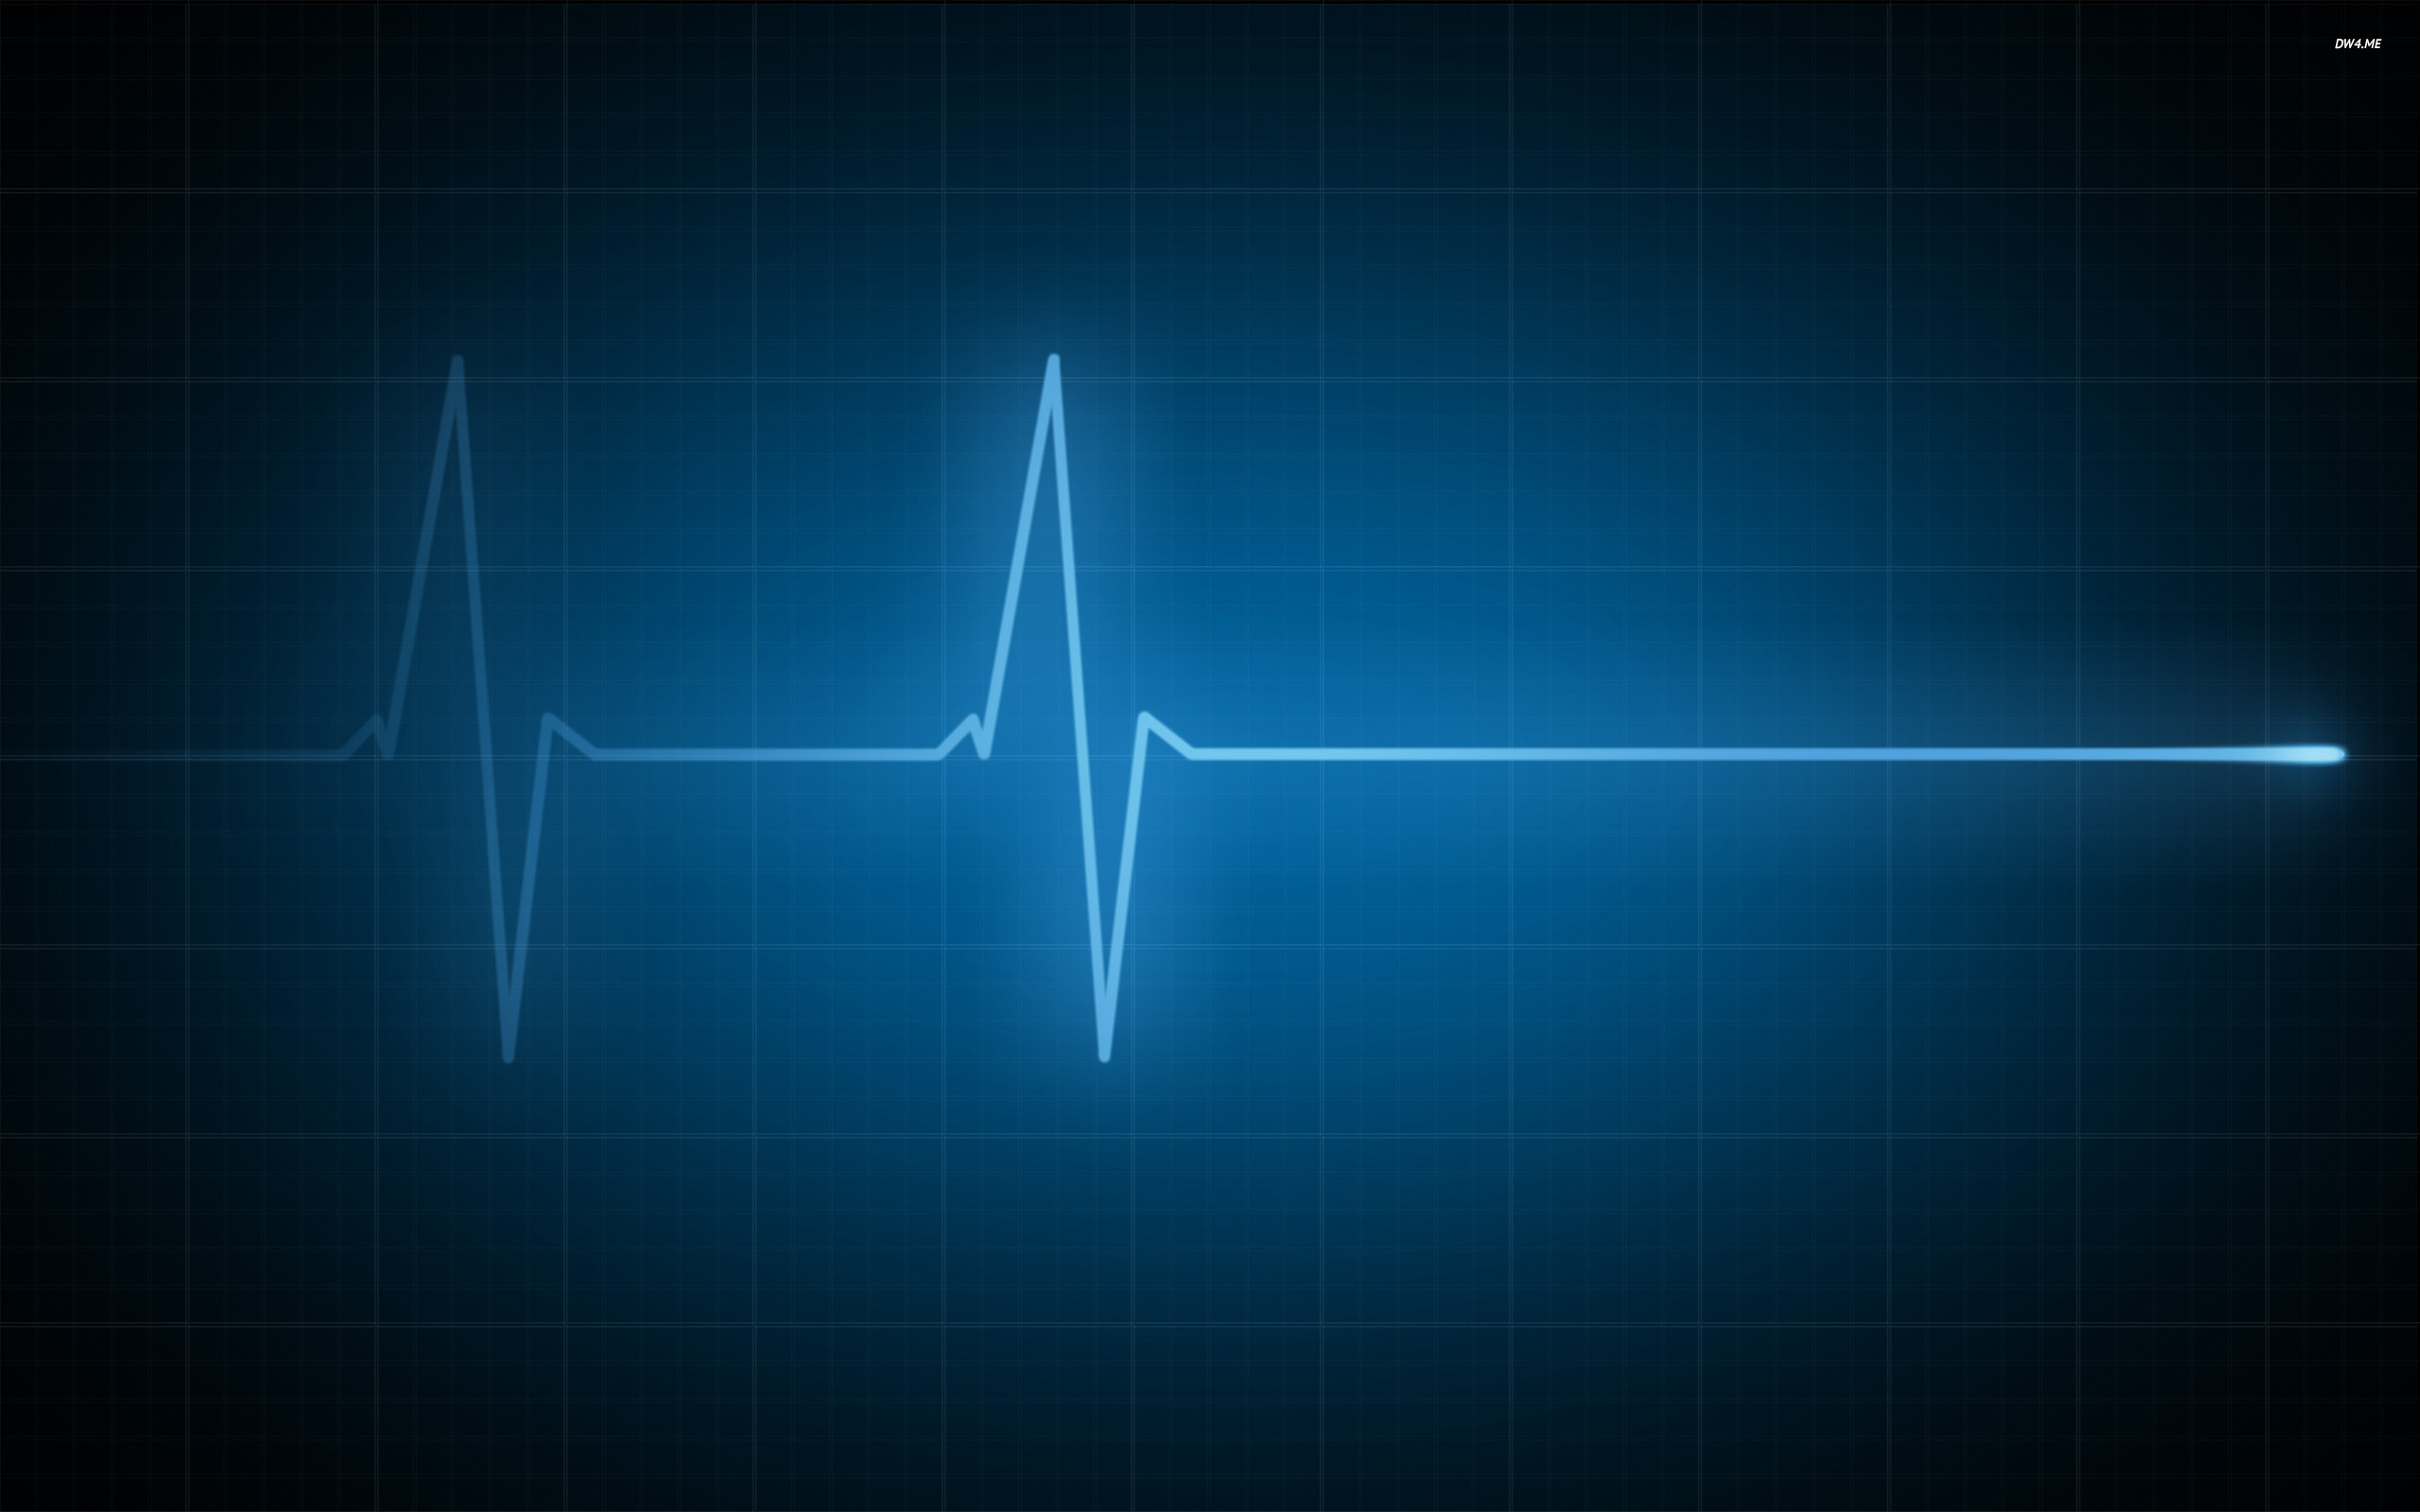 Heartbeat wallpaperDigital Art wallpapers#2484 1731